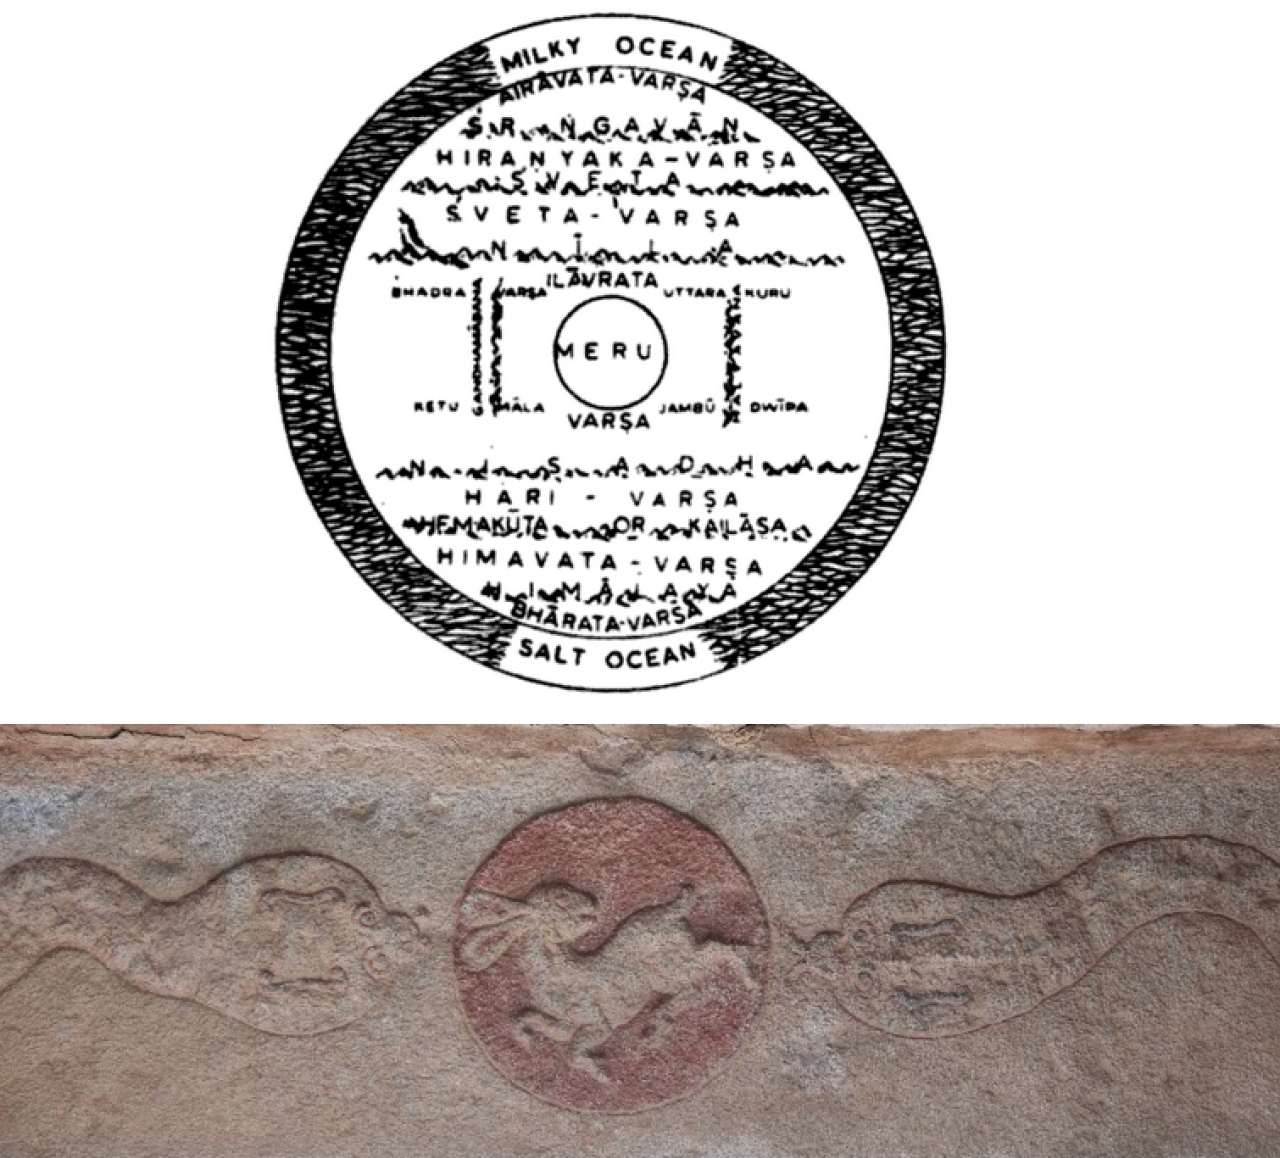 A depiction of Sudarsana island perhaps more faithful to the verses. (Below) Fifteenth-century Vijayanagar depiction of the rabbit-like reflection on the Moon. On both sides of the Moon are the serpents Rahu and Ketu, symbolic of the ascending node with the Moon moving to the north of the solar path and the descending node with the Moon moving to the south respectively.